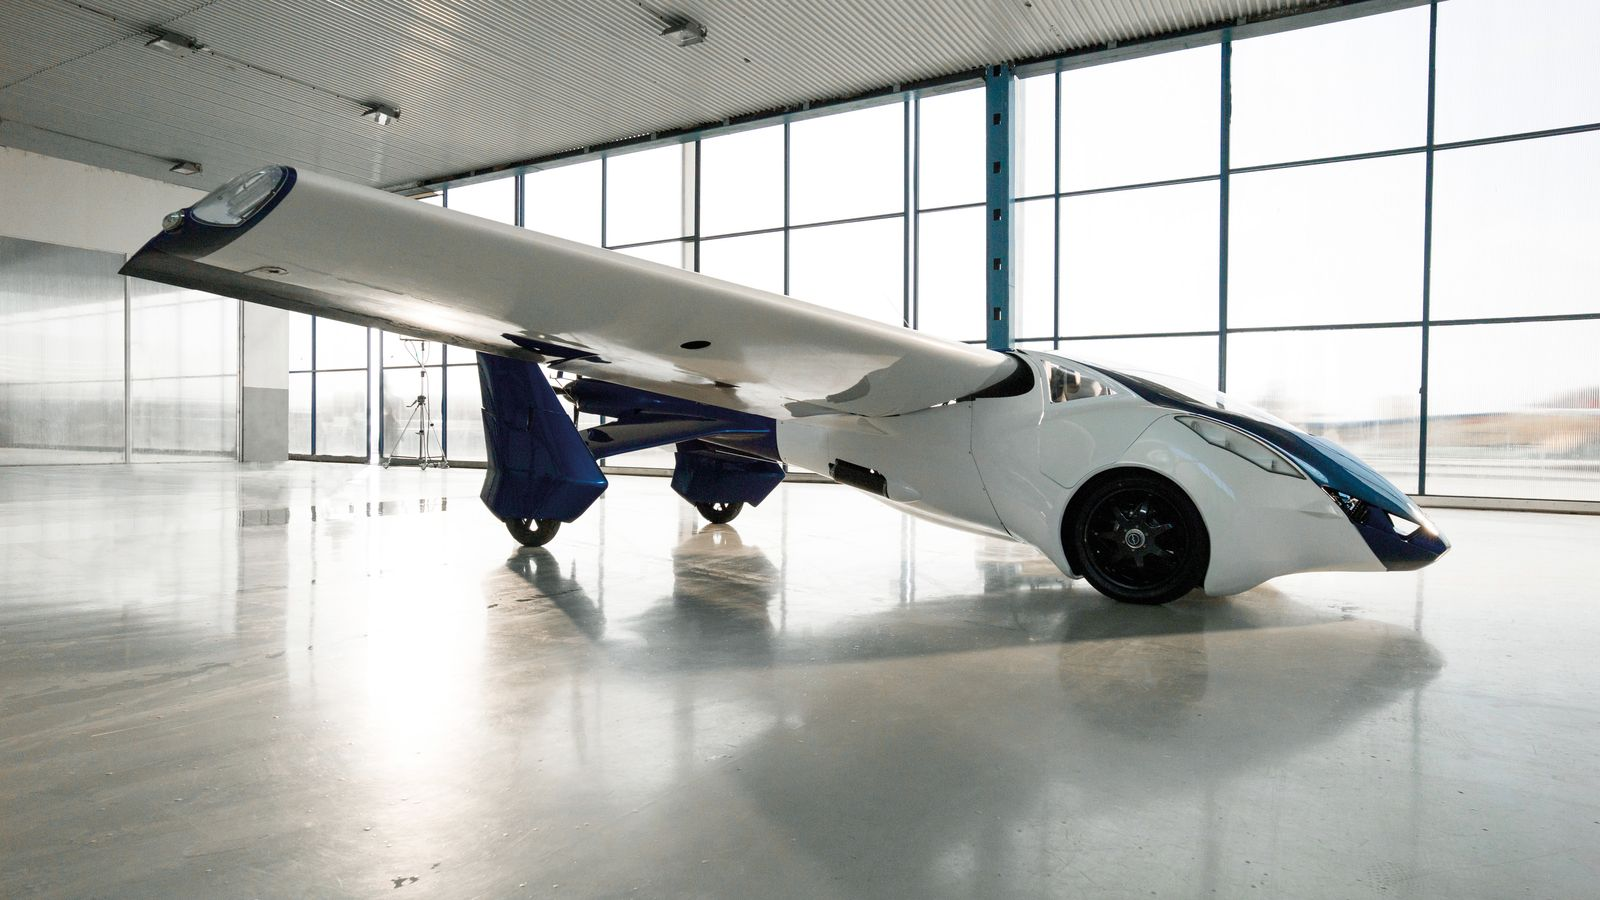 aeromobil_3_perspective_view_in_hangar_airplane_configuration_facing_right-0-0